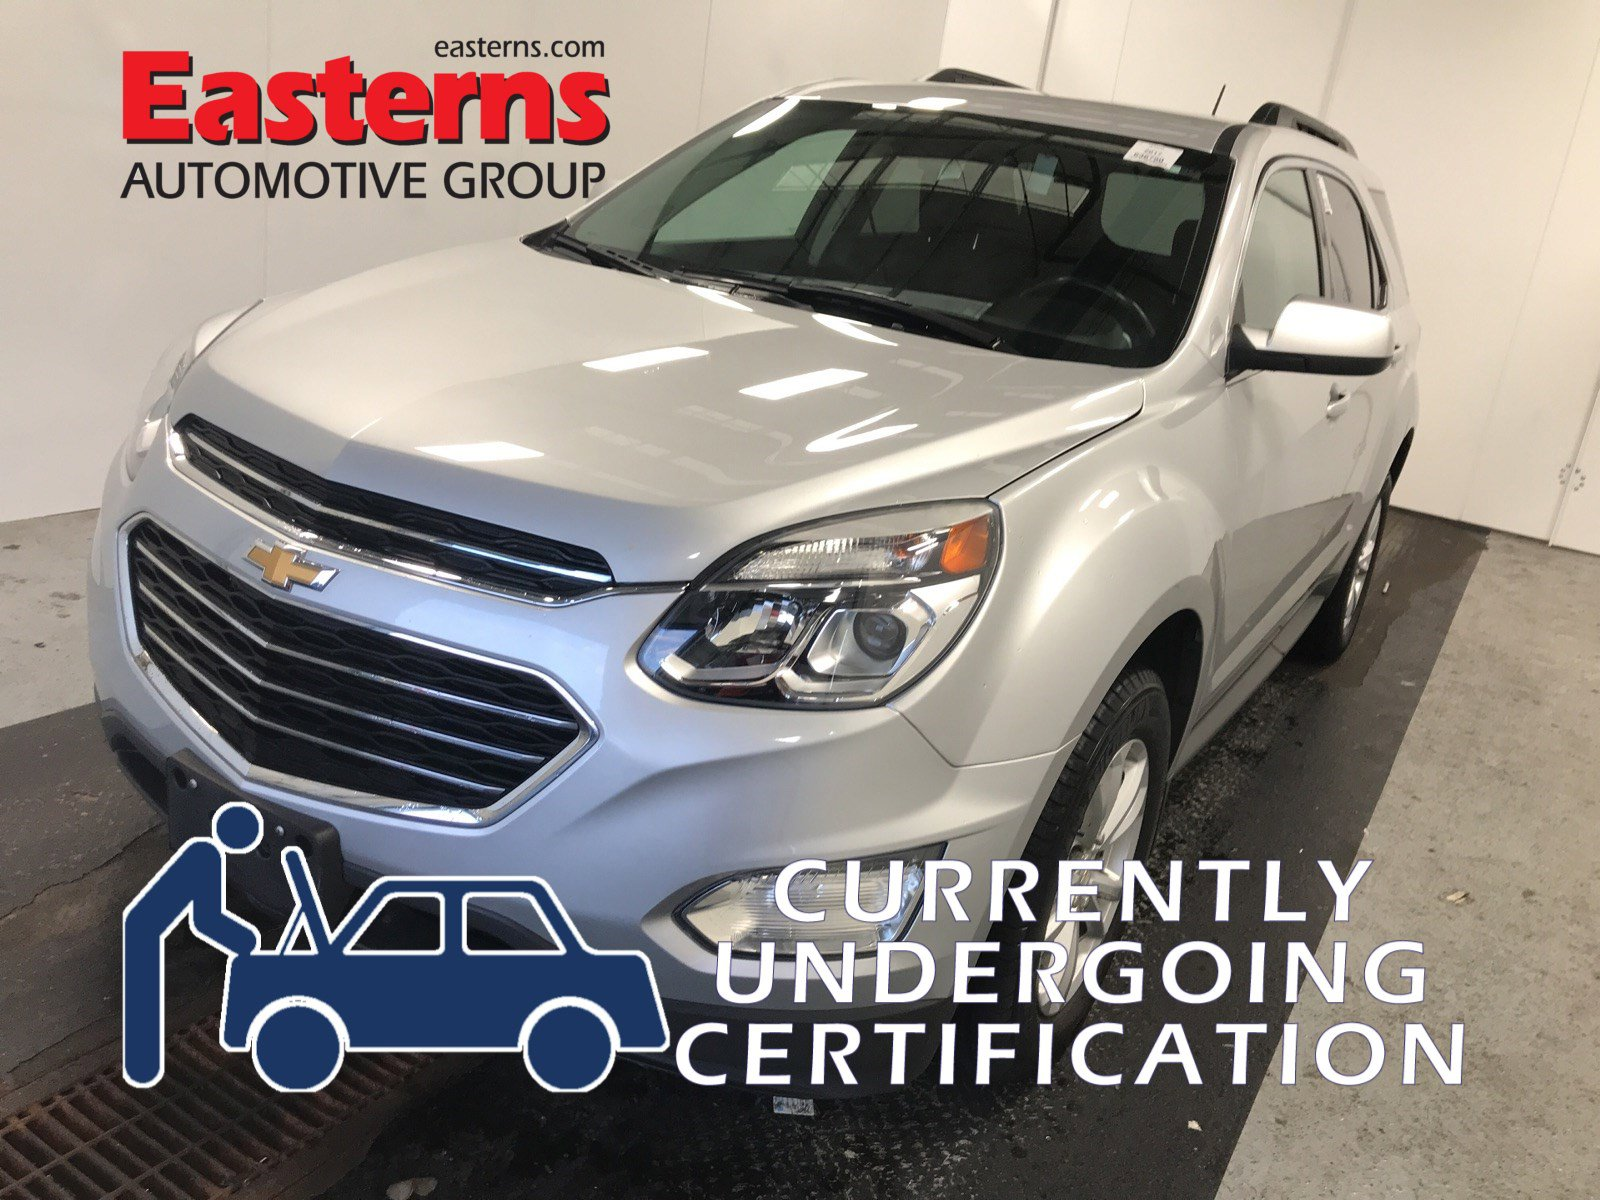 2017 Chevrolet Equinox AWD LT w/ Convenience Package image